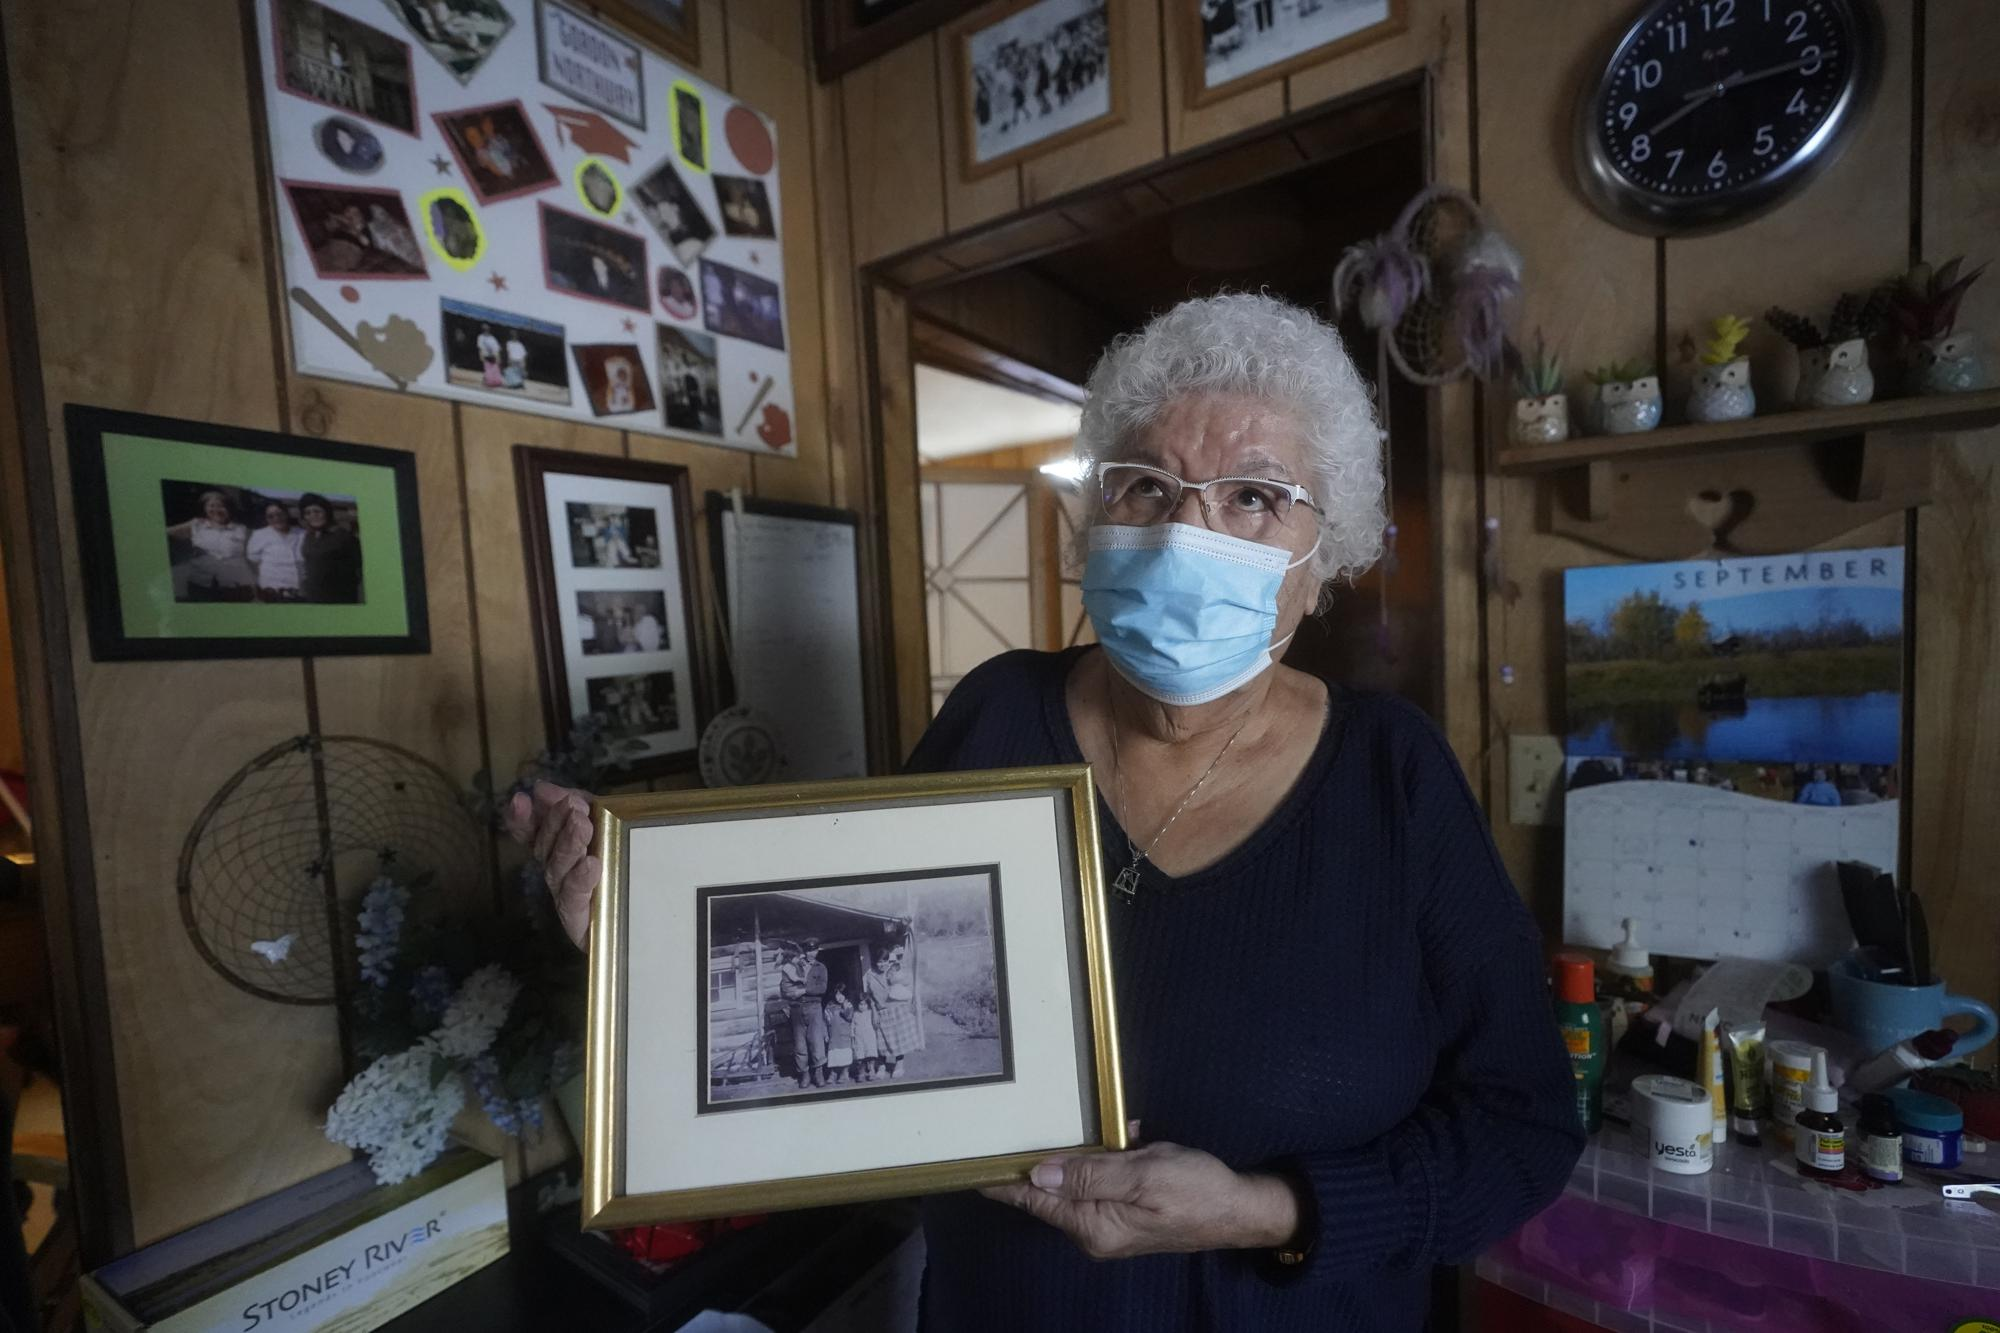 """Daisy Northway holds an undated photograph of her parents at her home Wednesday, Sept. 22, 2021, in Tok, Alaska. Northway speaks from first-hand knowledge when advocating that people get vaccinated for COVID-19. Her family came from Healy Lake, located about 70 miles northwest of Tok. The small village's population was almost entirely wiped out by a smallpox epidemic in 1947. """"My mother and dad had to bury my mother's parents and three of their children in a mass grave because they were so tired,"""" she said. (AP Photo/Rick Bowmer)"""